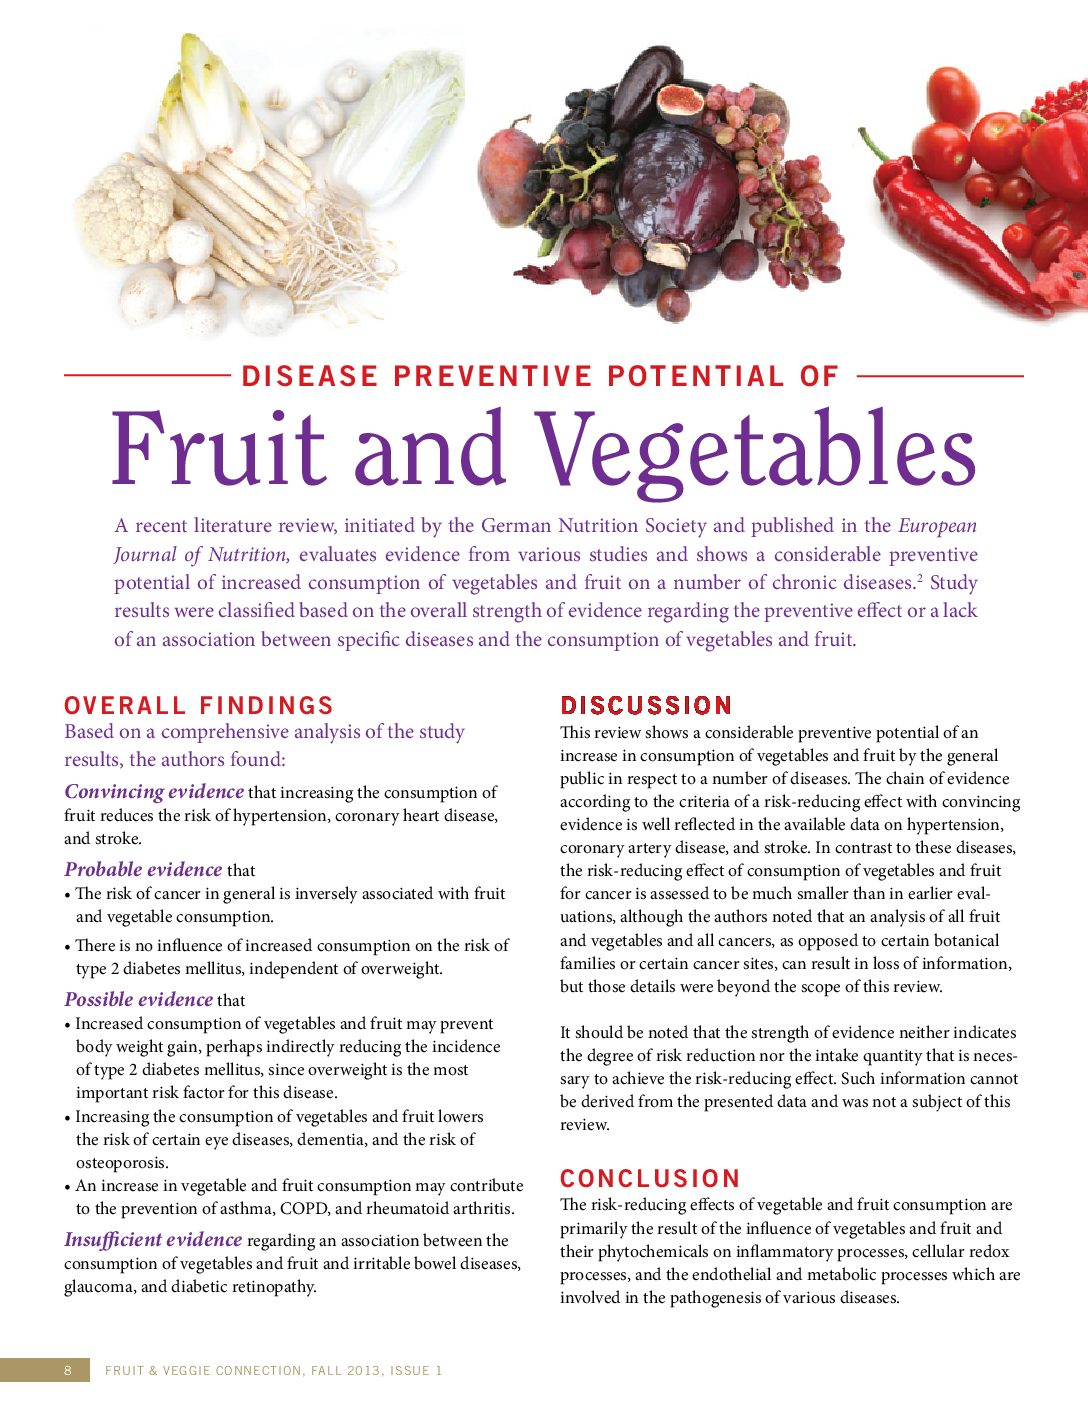 health benefits of fruits & vegetables: the science - have a